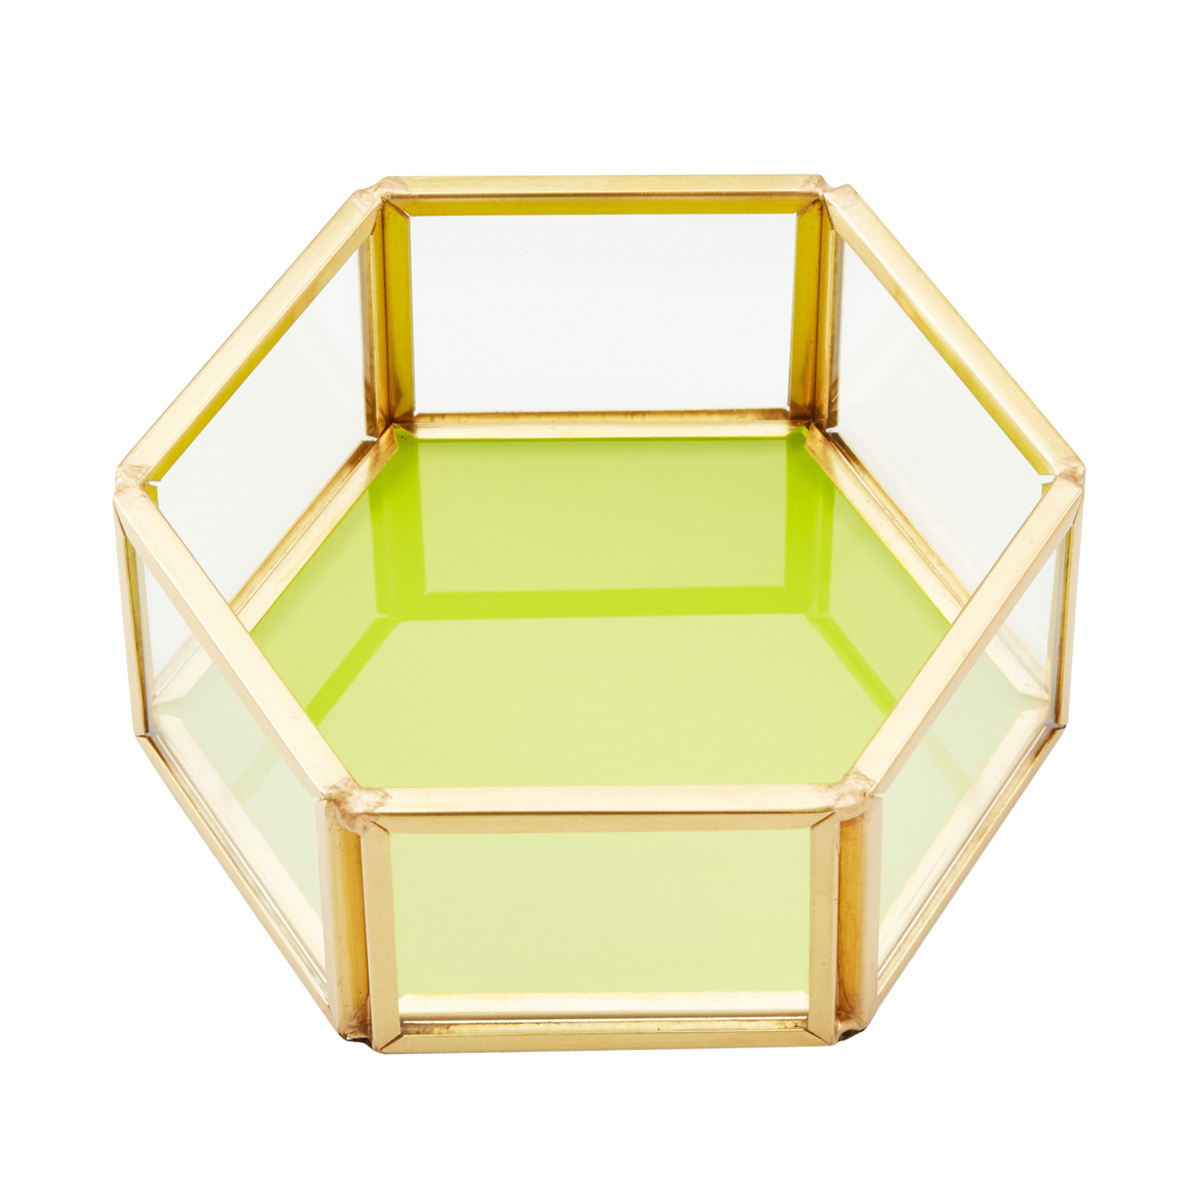 Glass and Metal Jewelry Tray